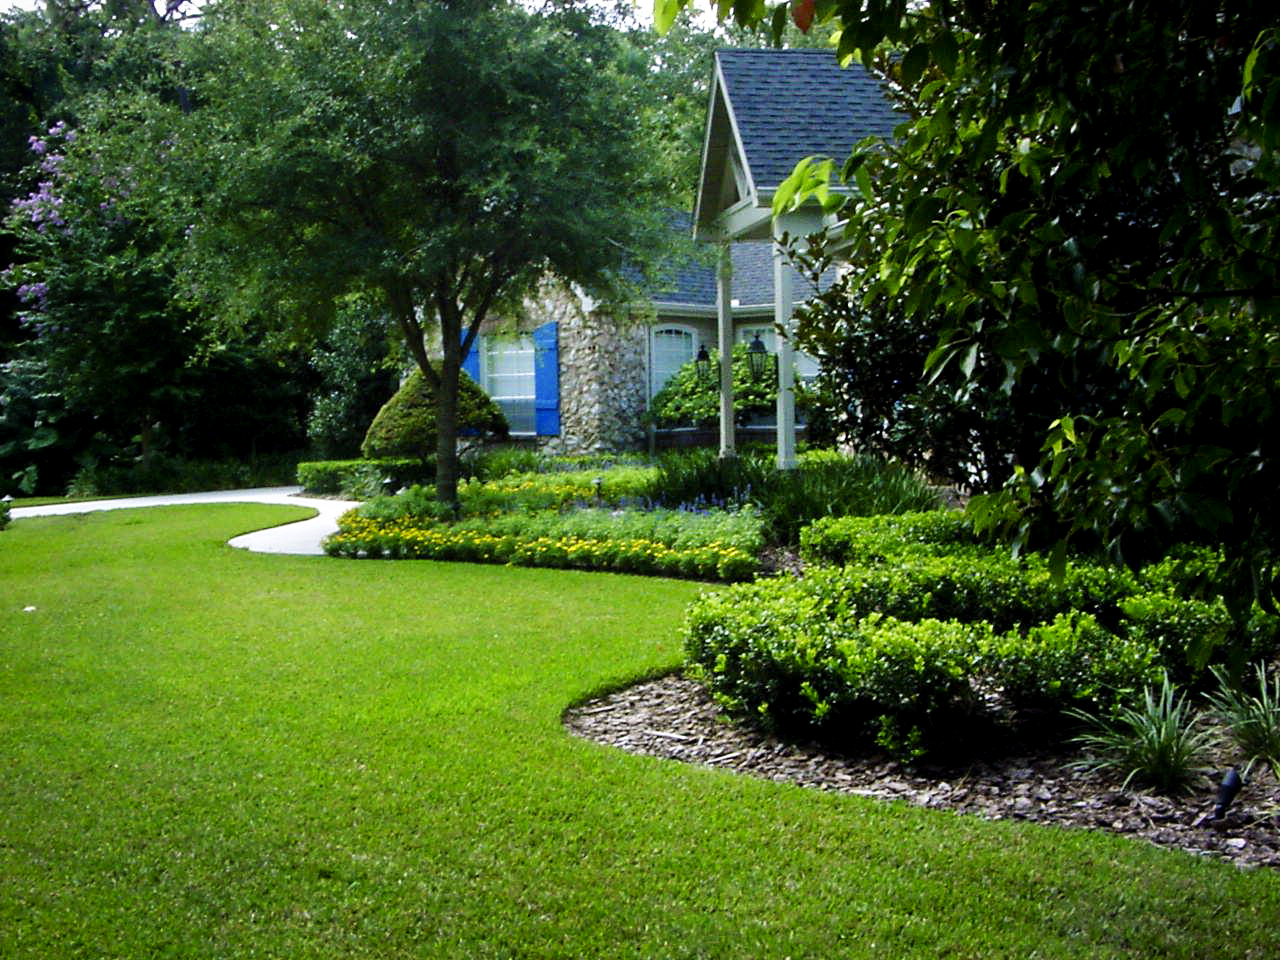 Design plan ideas for landscaping my backyard for Beautiful yard landscapes